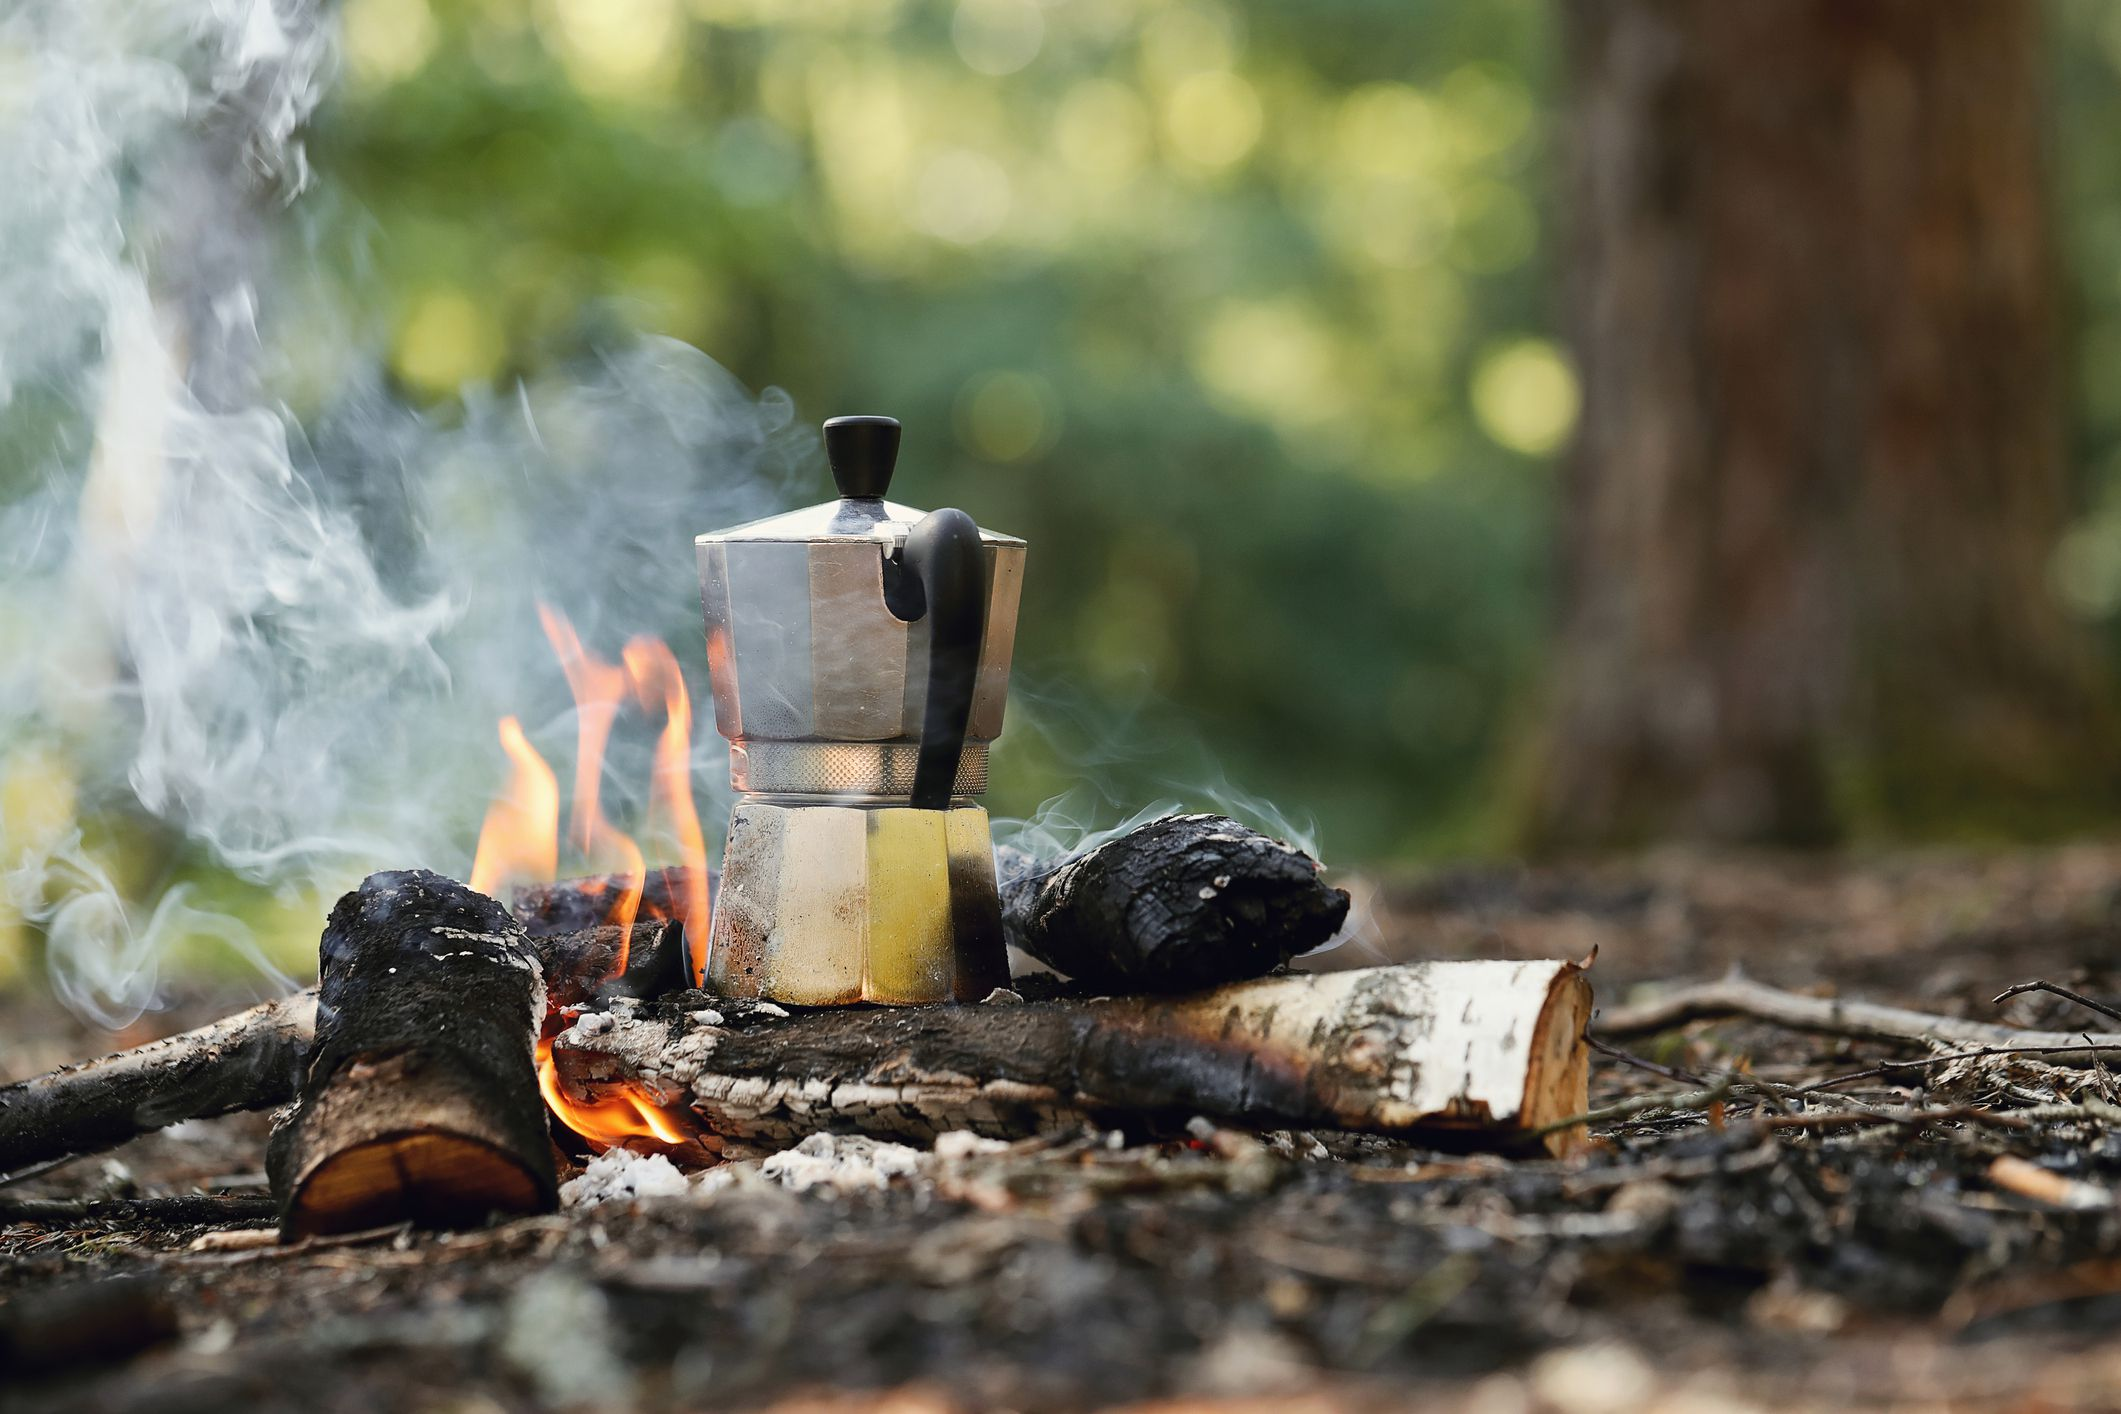 The 10 Best Camping Coffee Makers of 2020